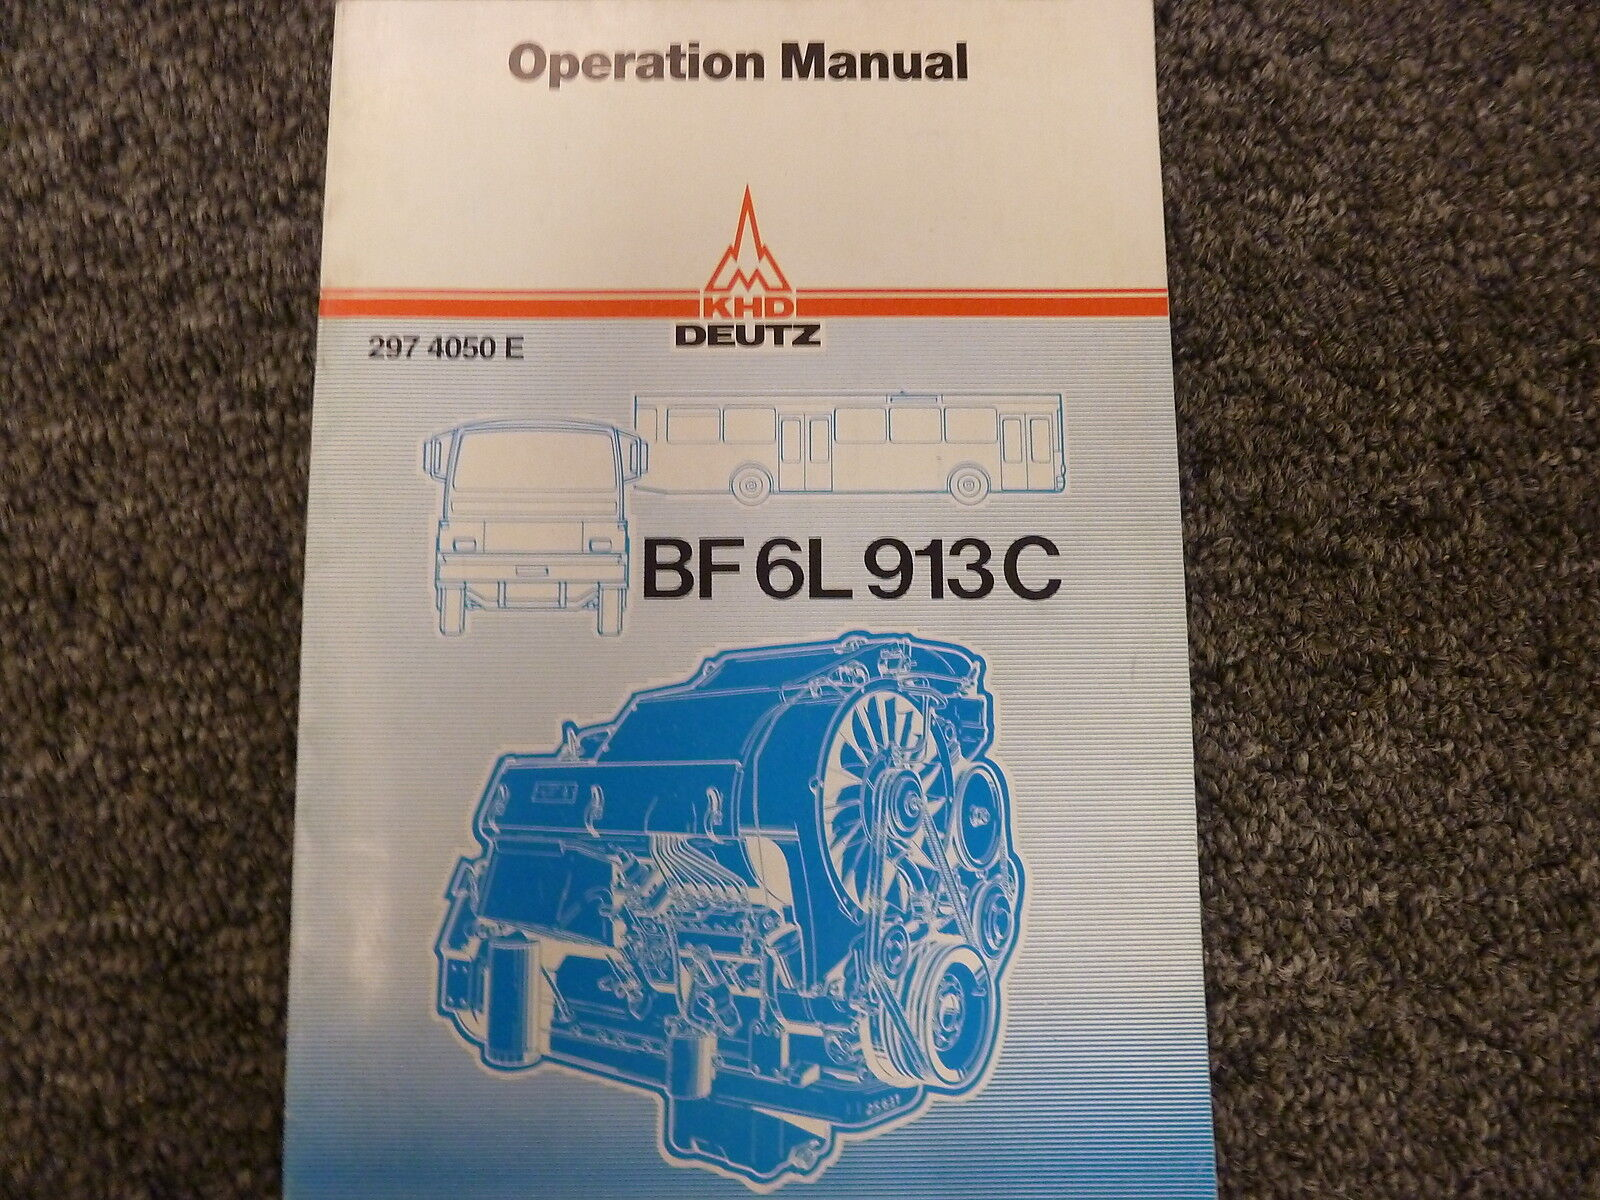 KHD Deutz Model BF6L913C Diesel Engine Owner Operator Maintenance Manual  Book 1 of 1Only 1 available ...